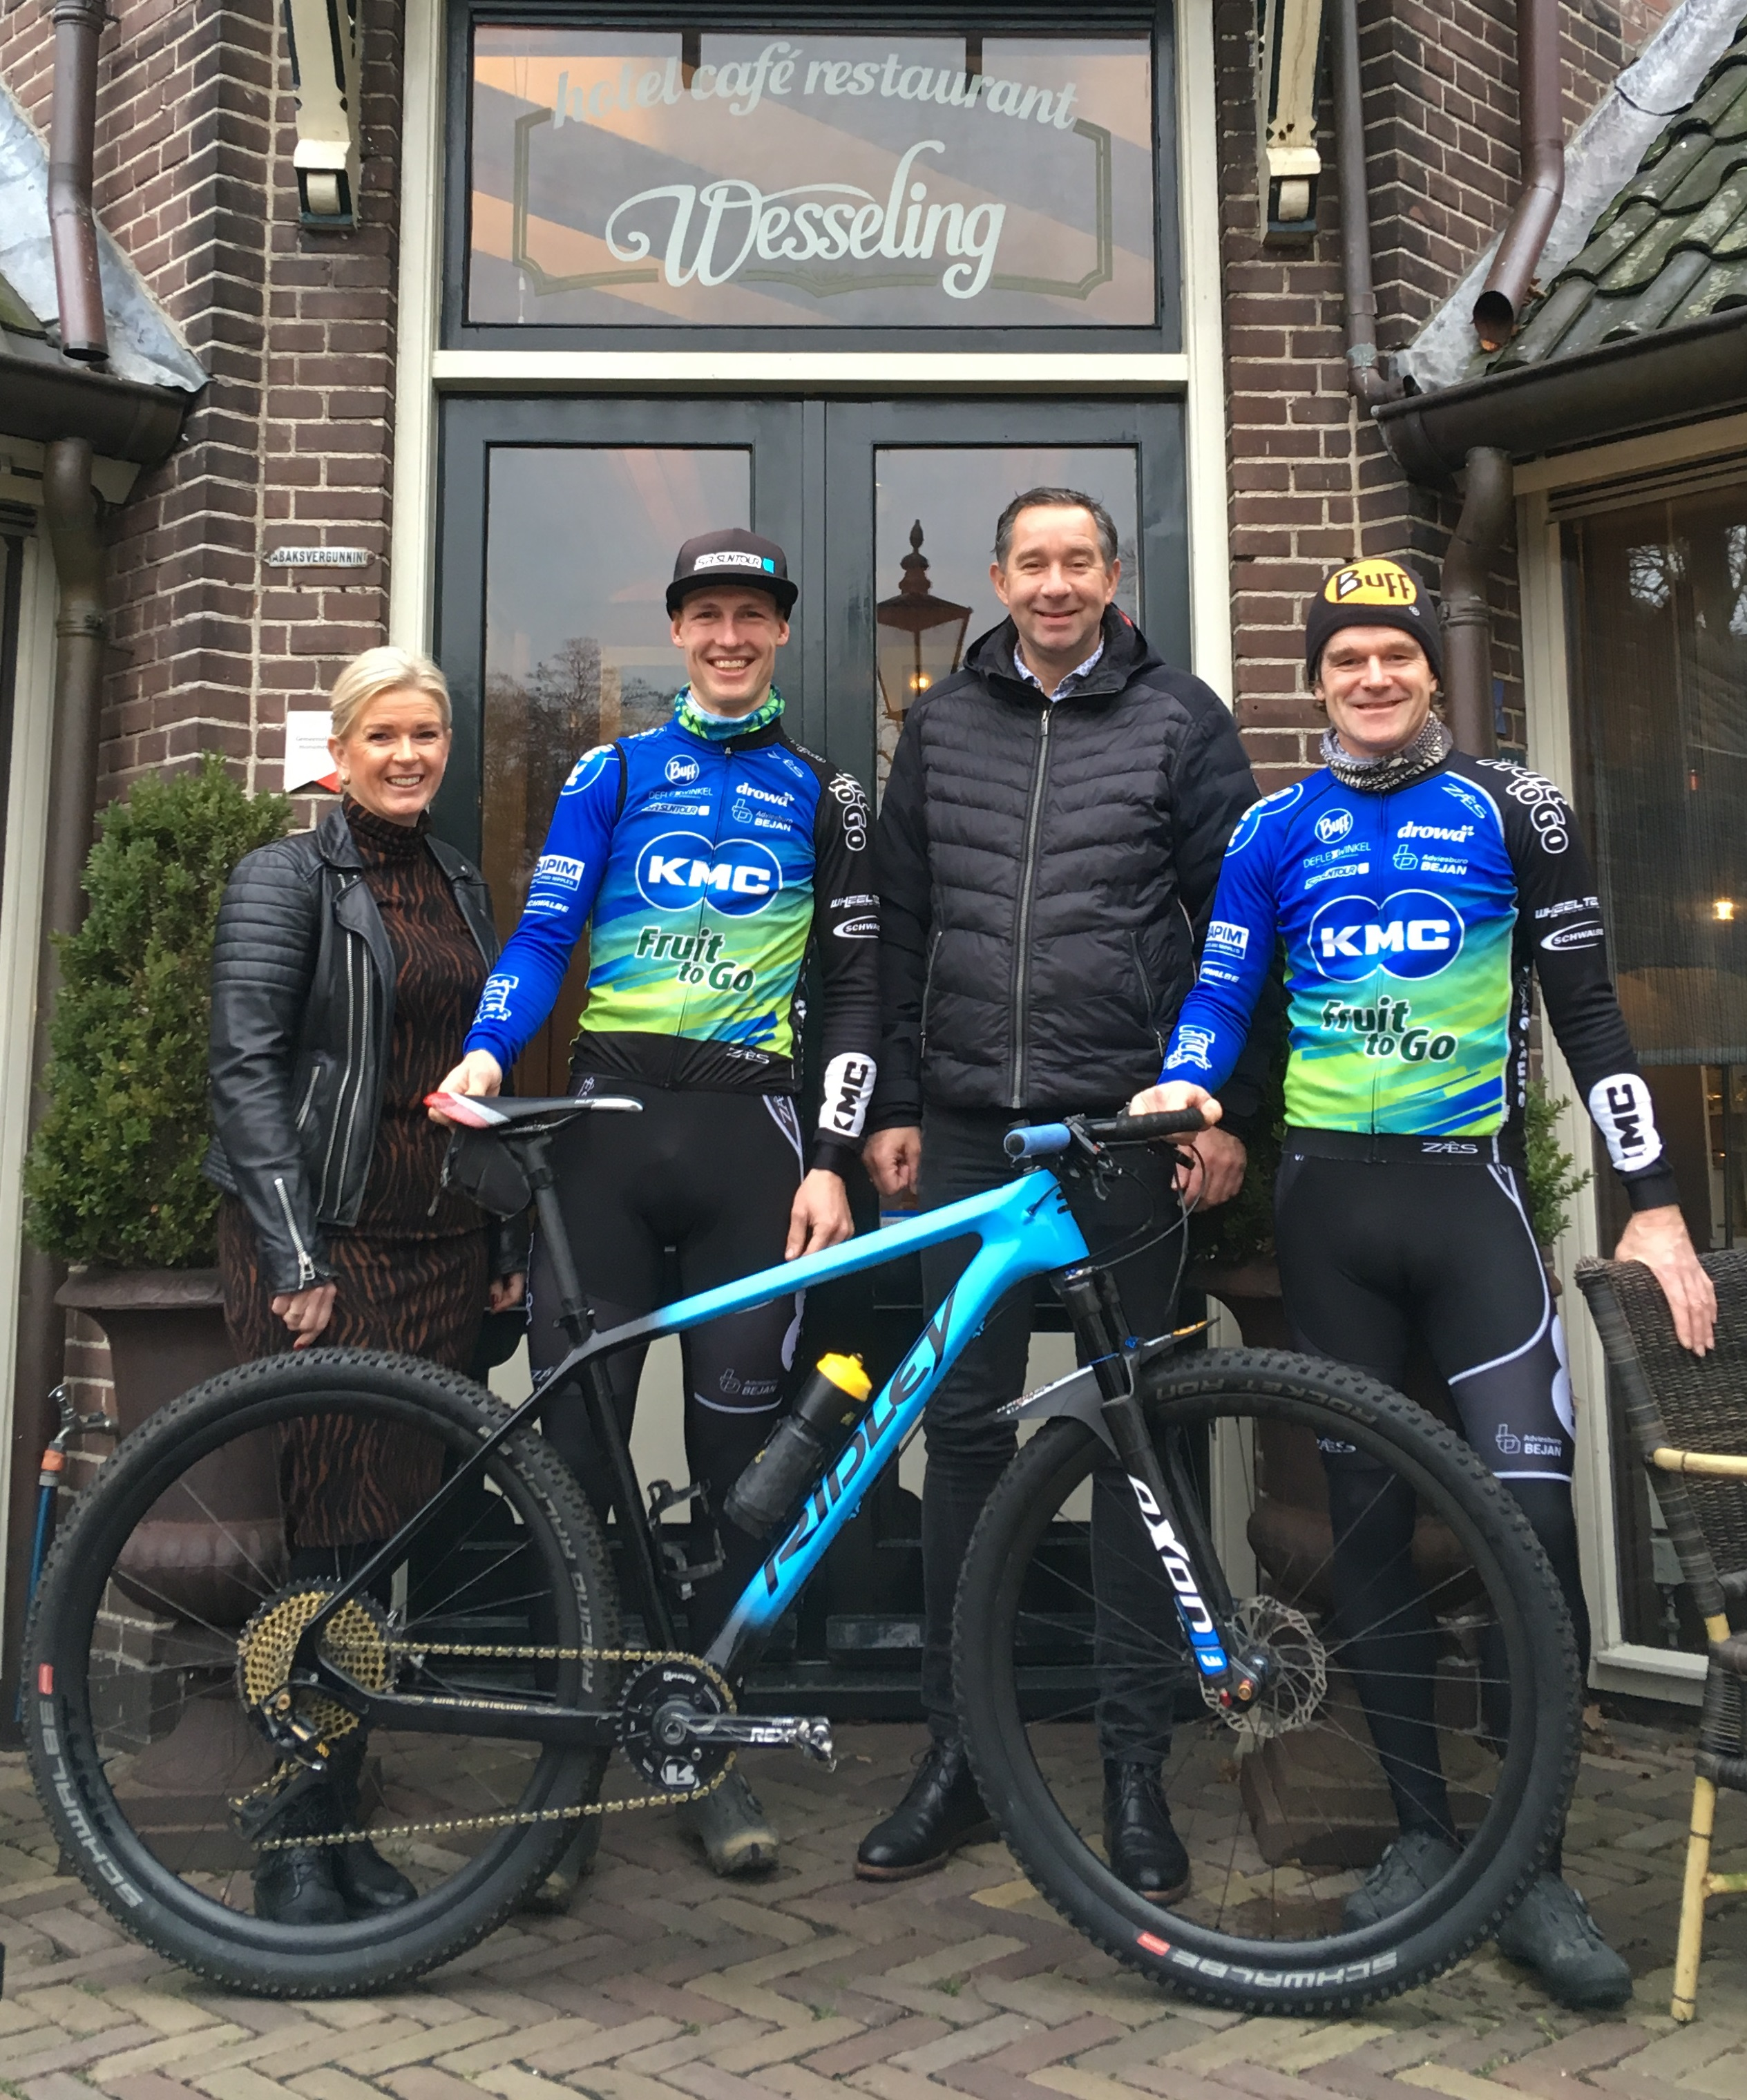 Hotel Wesseling partner KMC mountainbiketeam